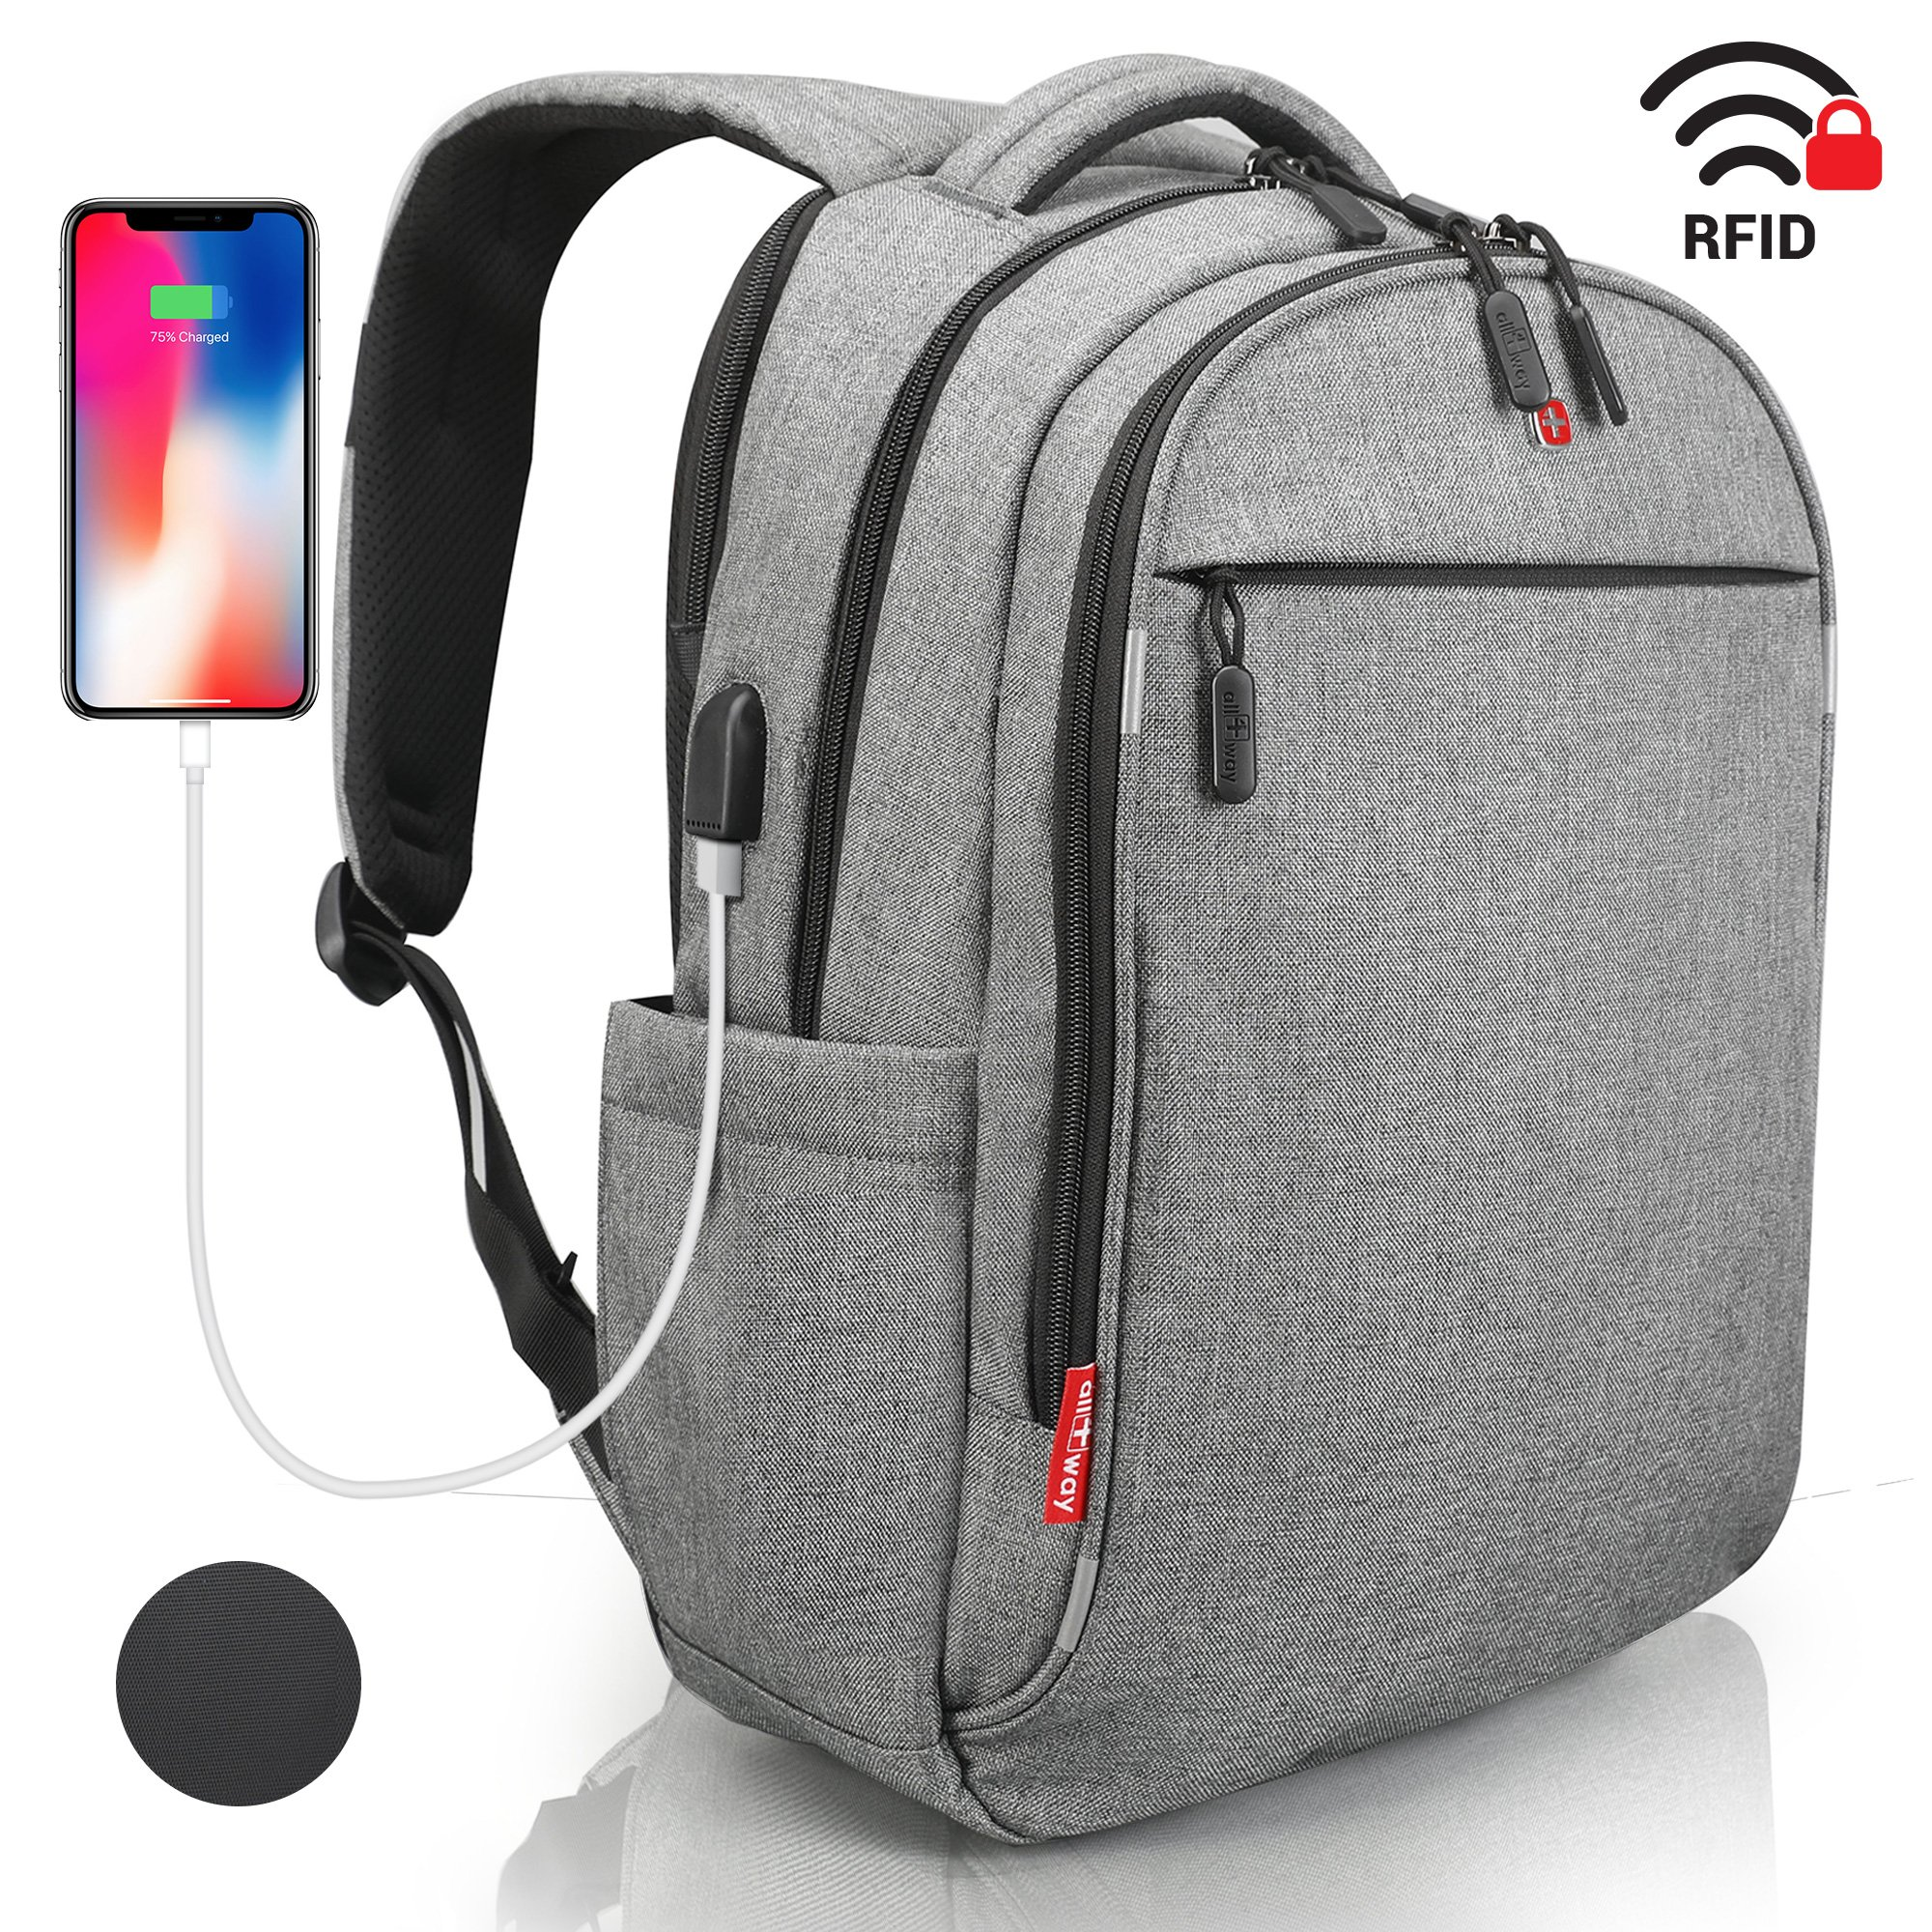 Laptop Backpack - Anti Theft Backpack Waterproof Rain Cover - SWISS Design RFID Blocking - USB Charging Port - Business College Travel School Backpack - Grey Backpack for Men Women 15.6 inch